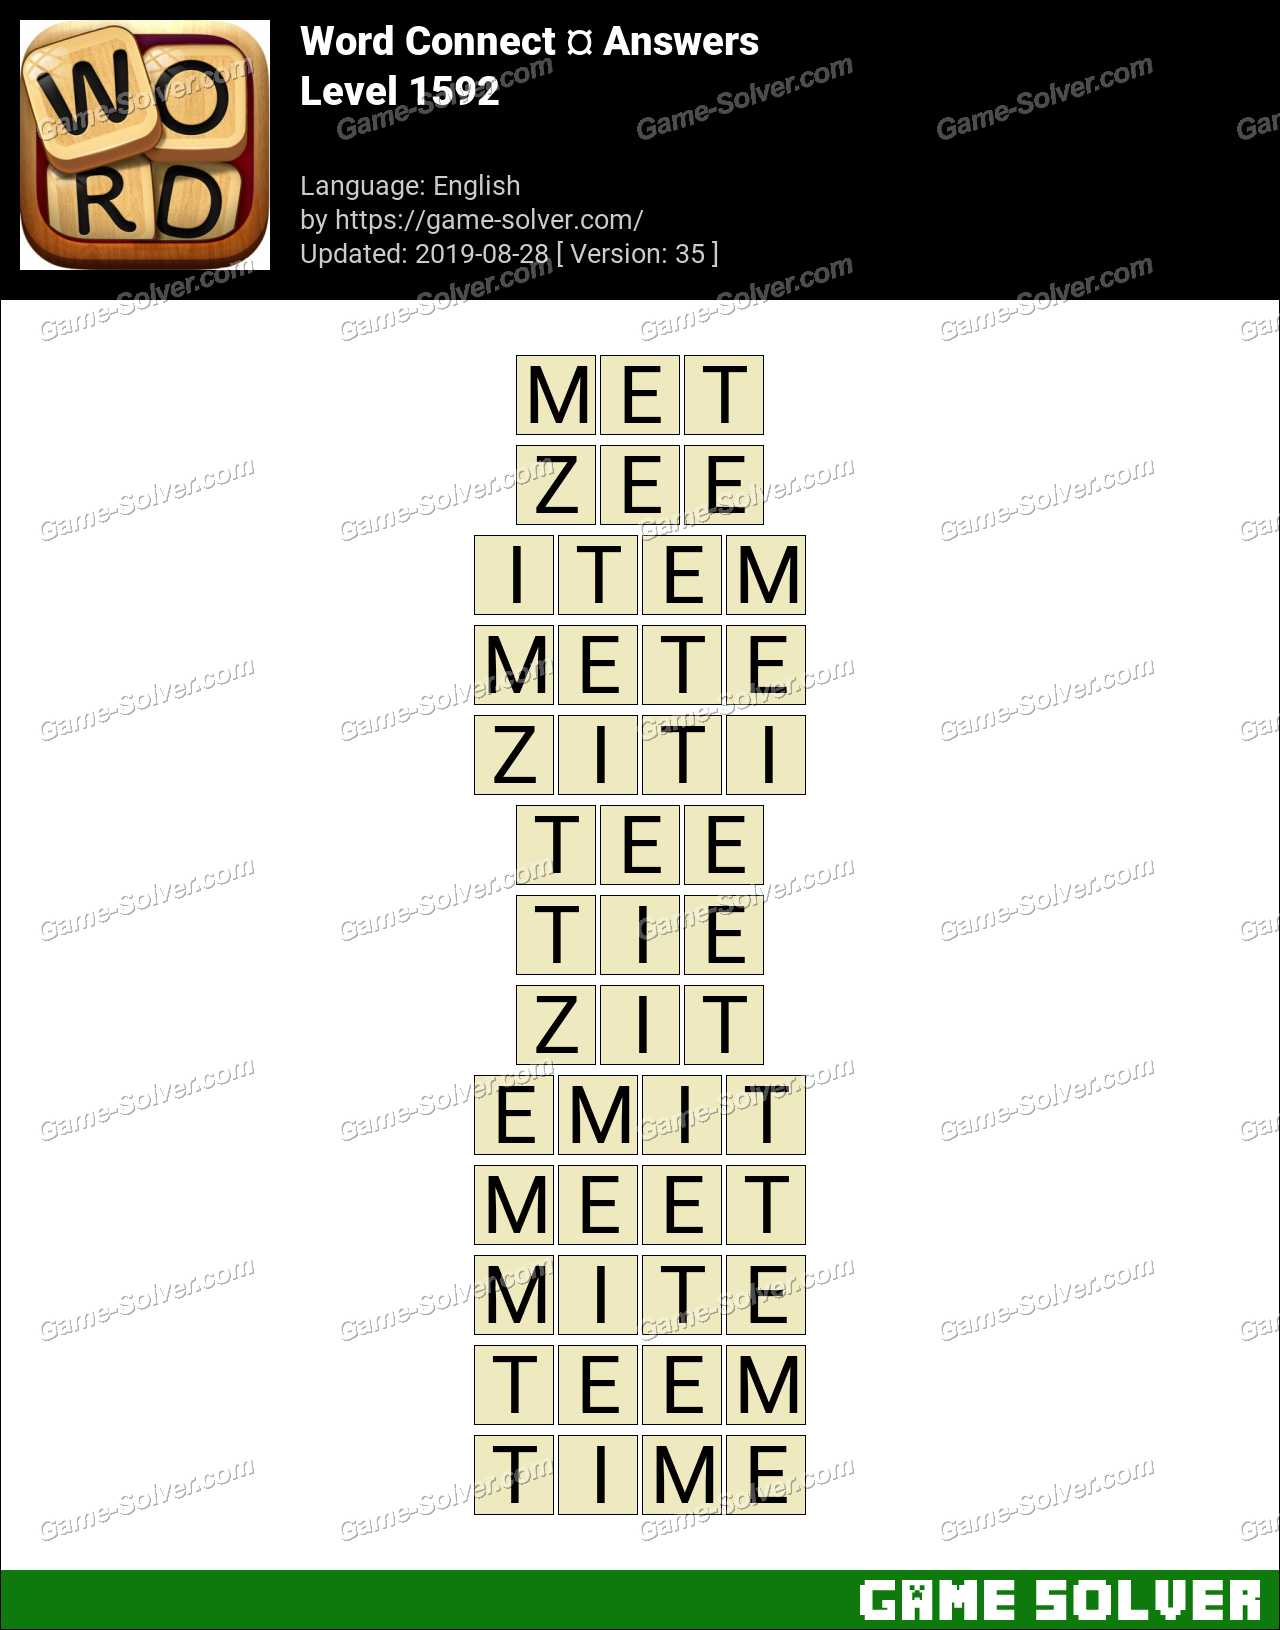 Word Connect Level 1592 Answers